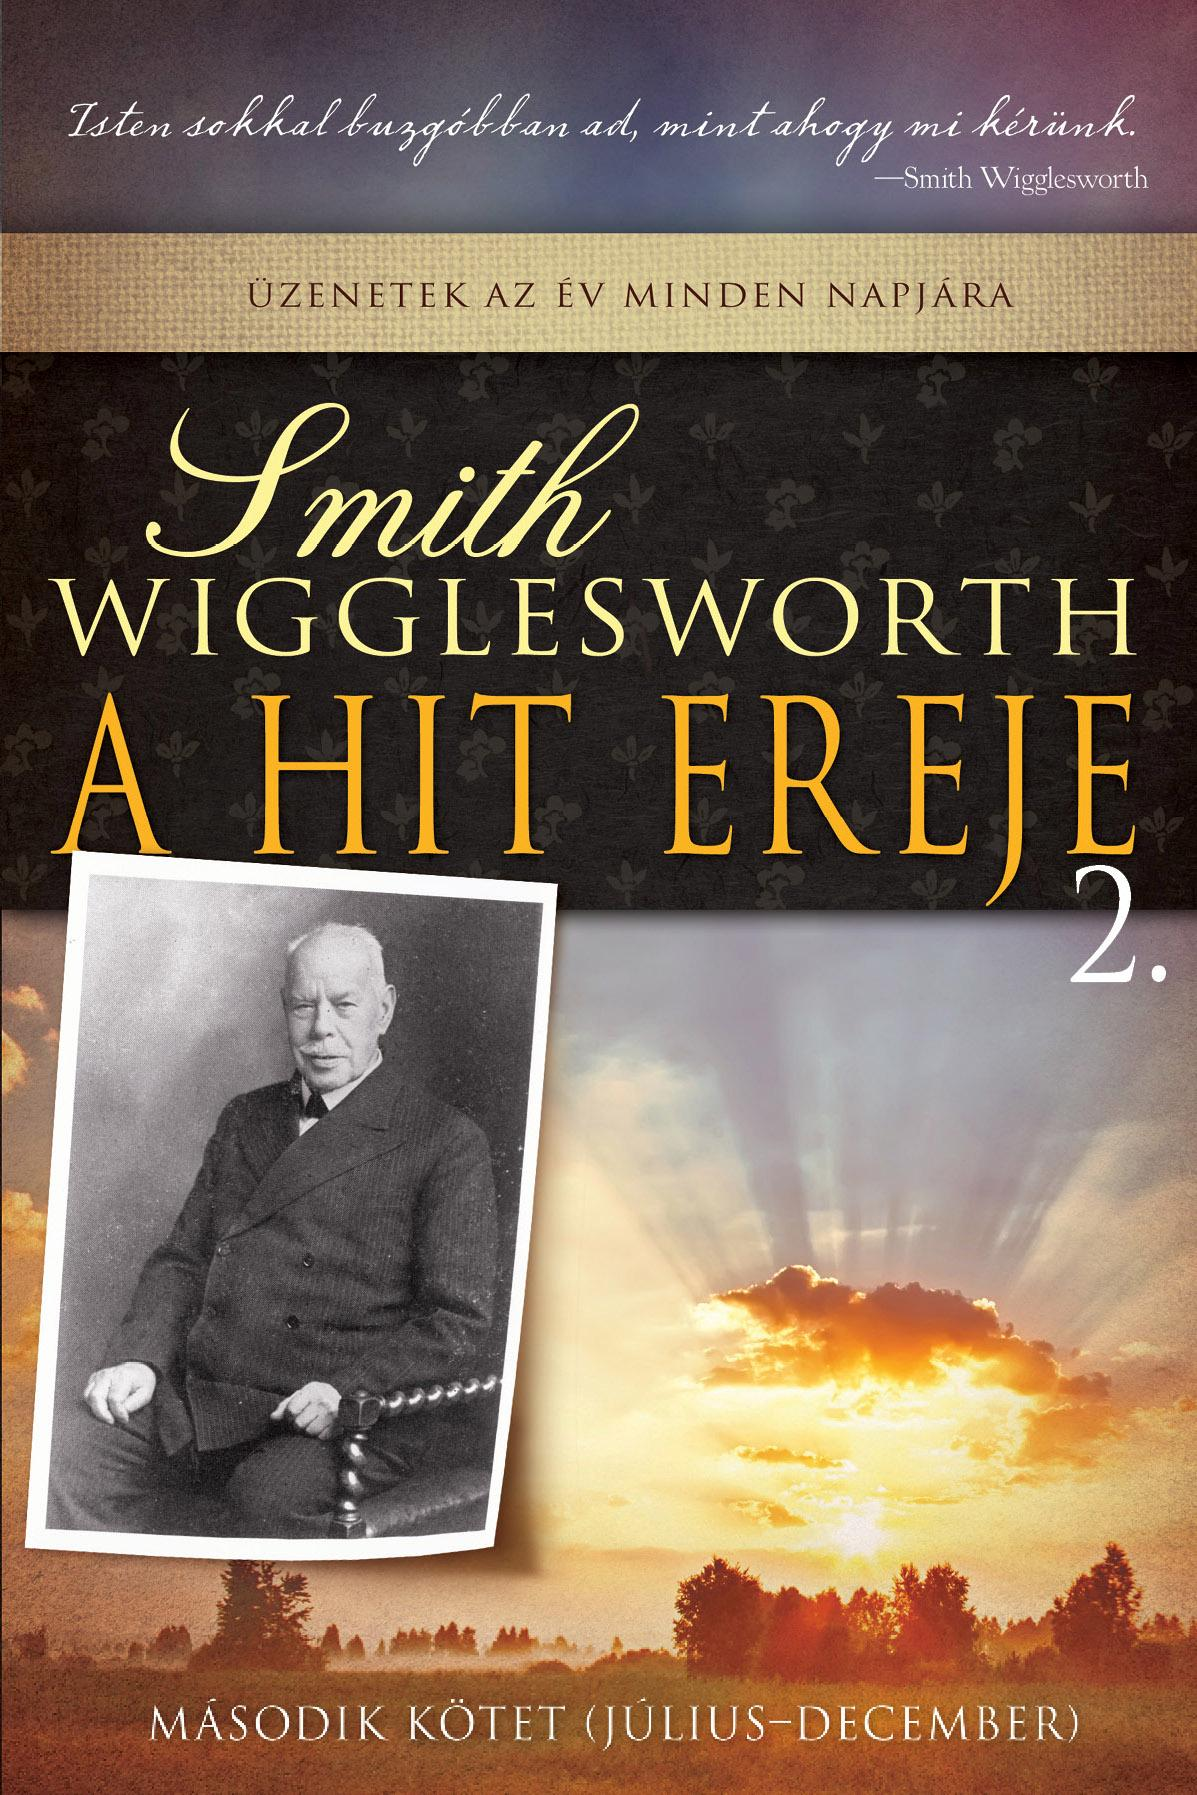 WIGGLESWORTH, SMITH - A HIT EREJE 2.